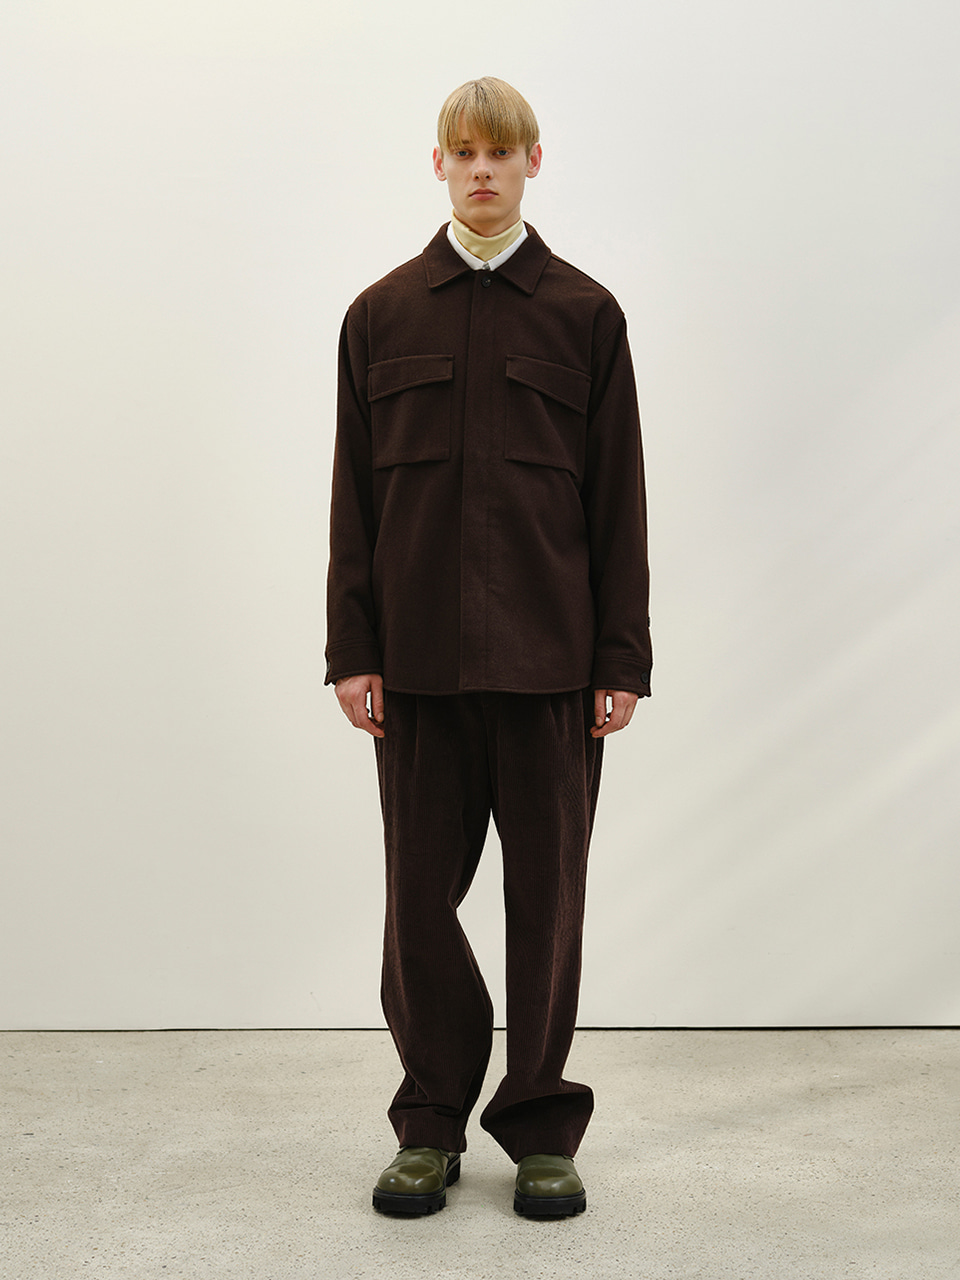 [FW20] TAILORED WIDE PANTS(Dark Beige) IEY [FW20] TAILORED WIDE PANTS(Dark Beige)